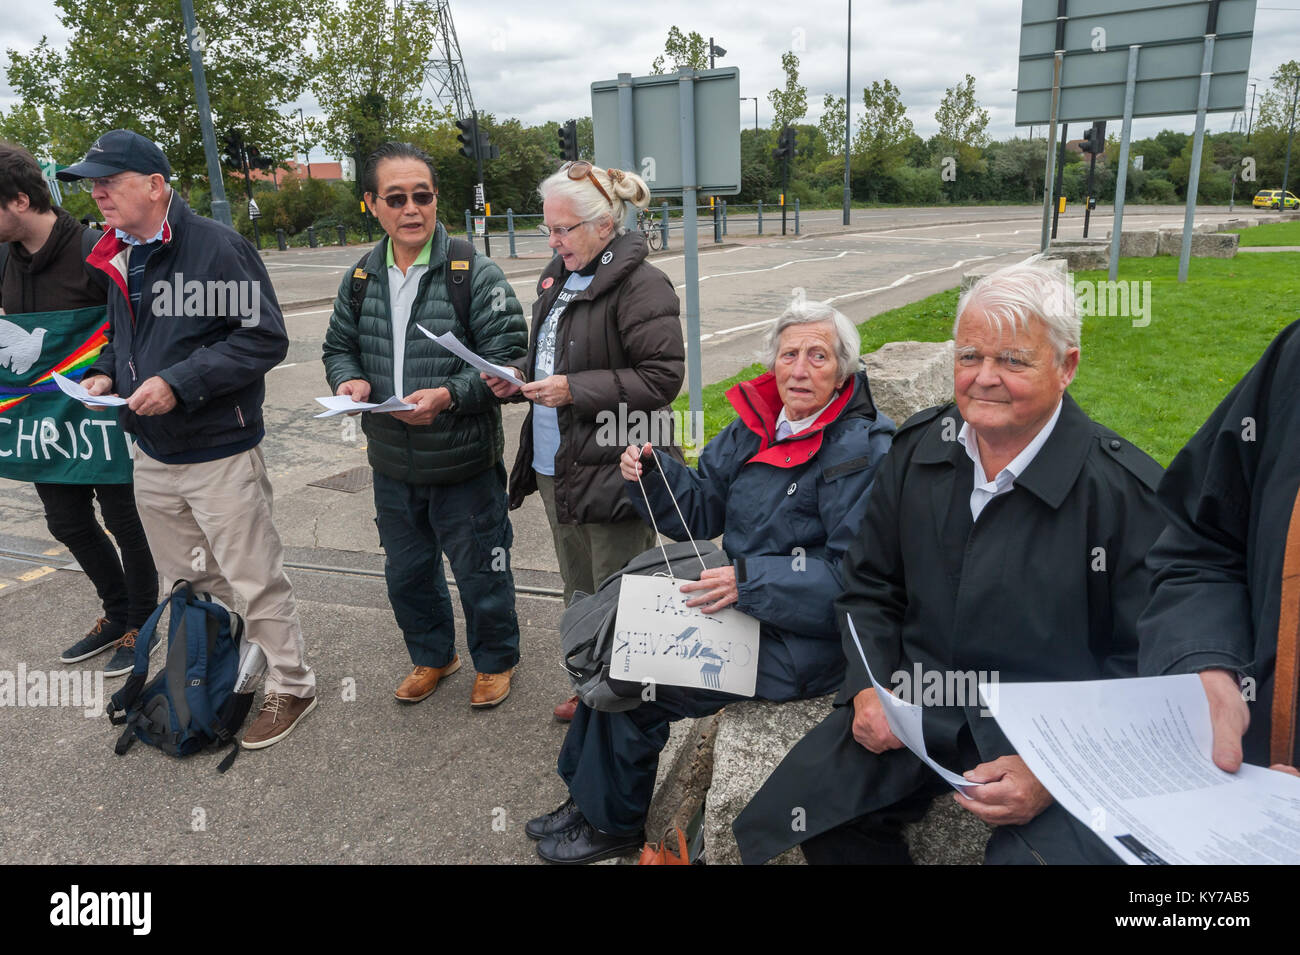 Bruce Kent (right) and others at the Pax Christi led 'Prayers of Repentance' outside the ExCeL centre where the Stock Photo